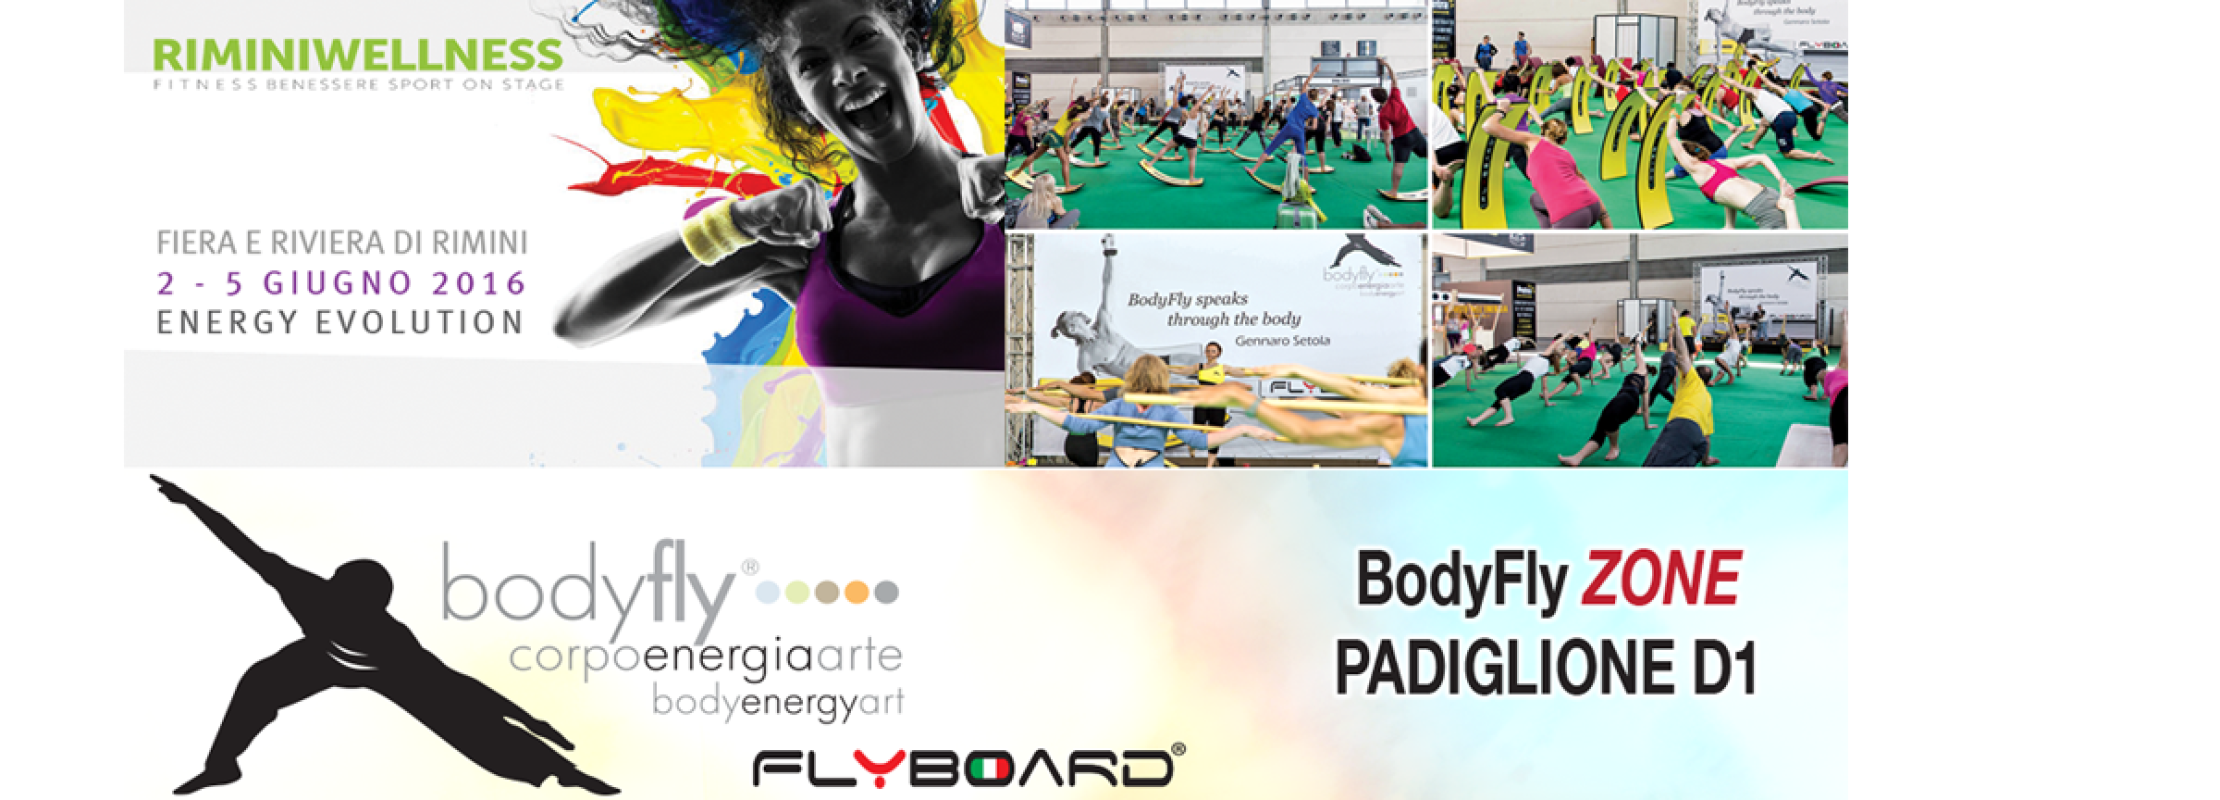 BodyFly ZONE e Flyboard Rimini Wellness 2016